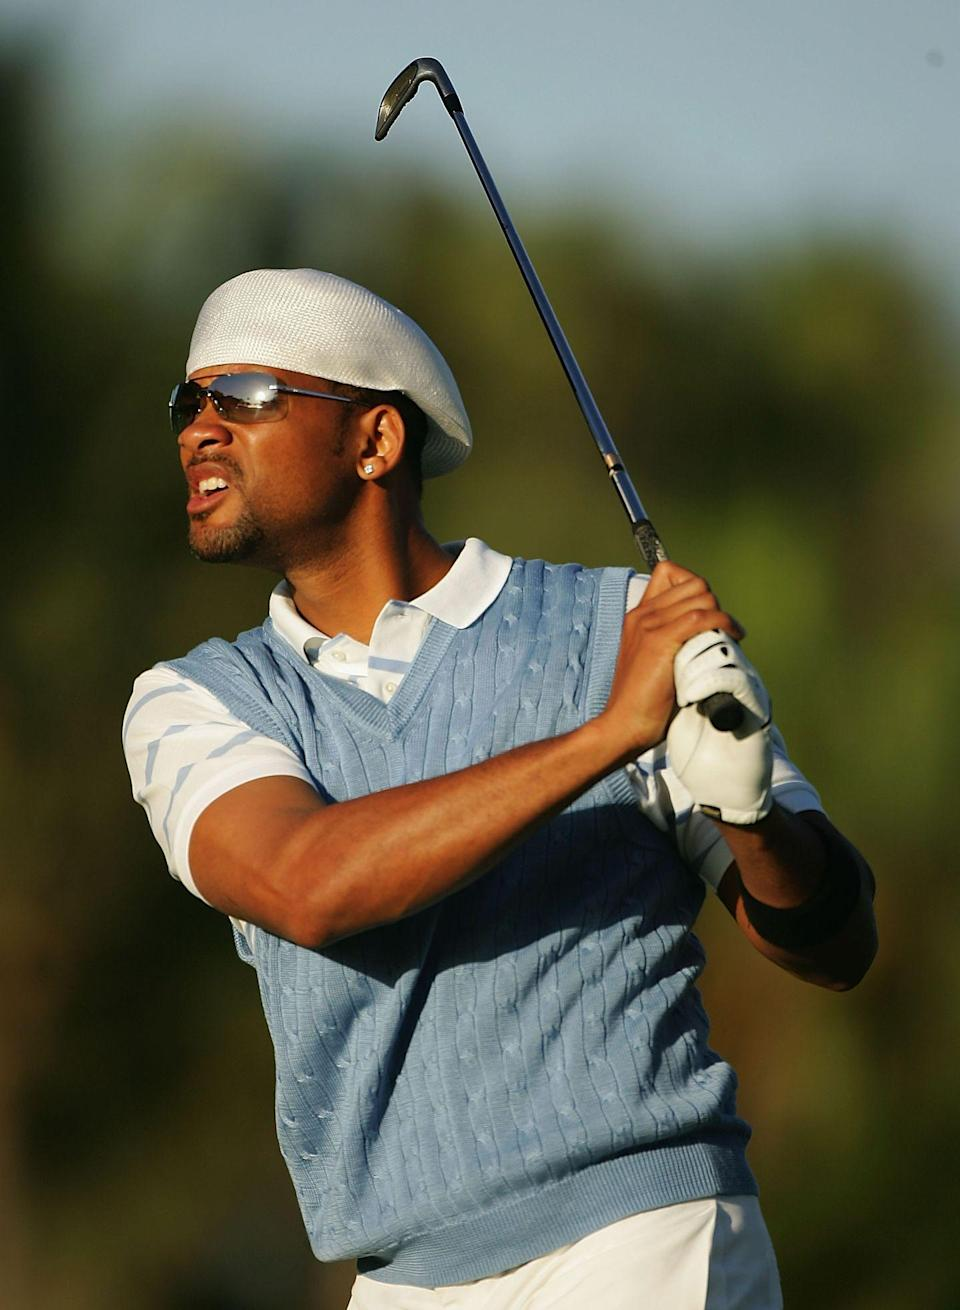 <p>Will Smith at the Sony Open in 2005.</p>